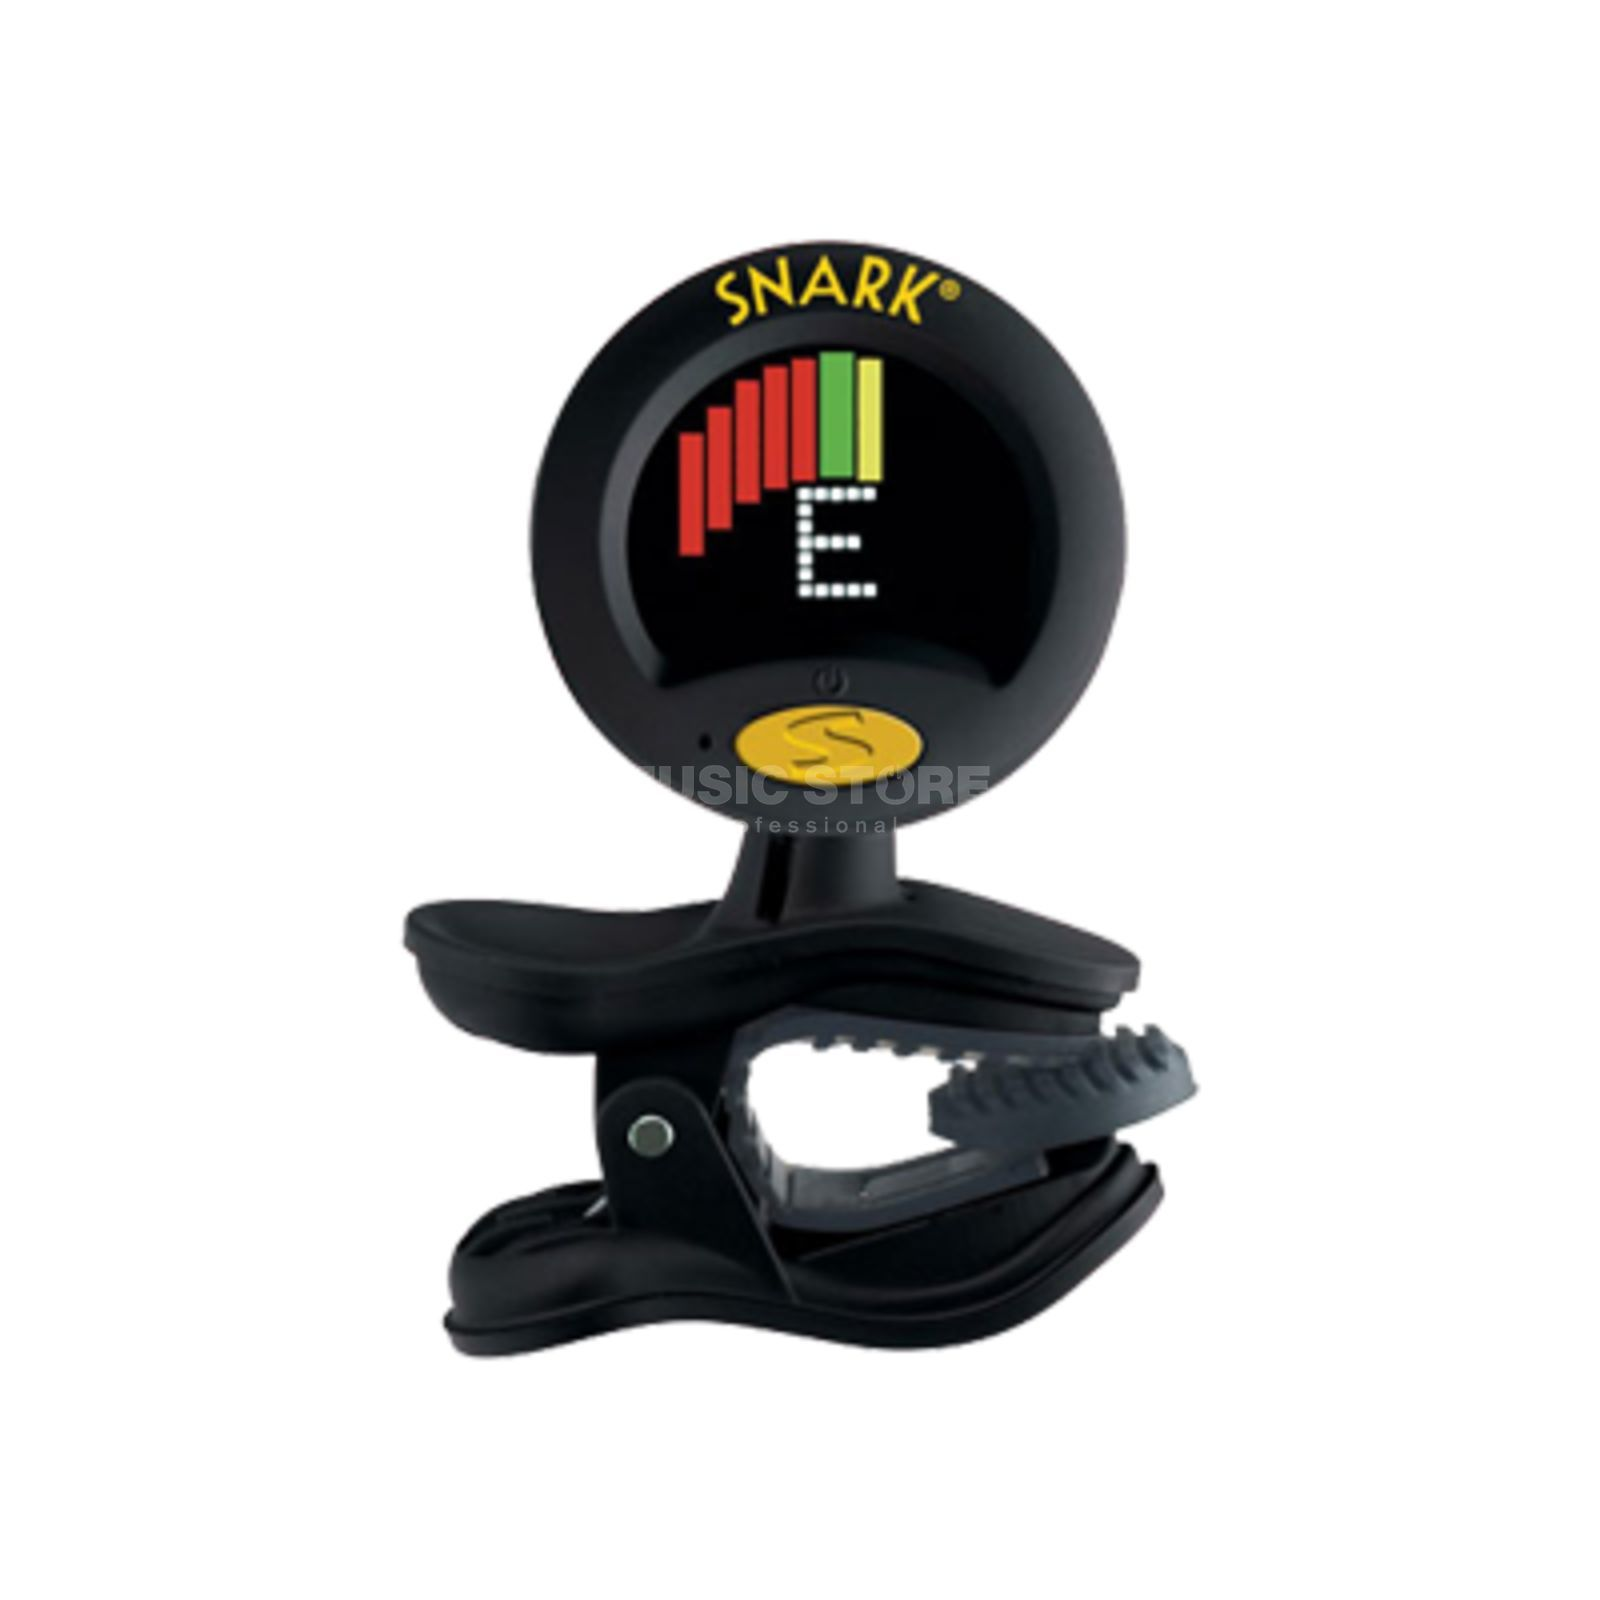 Snark SN-8 Clip on Tuner Super Tight Produktbillede